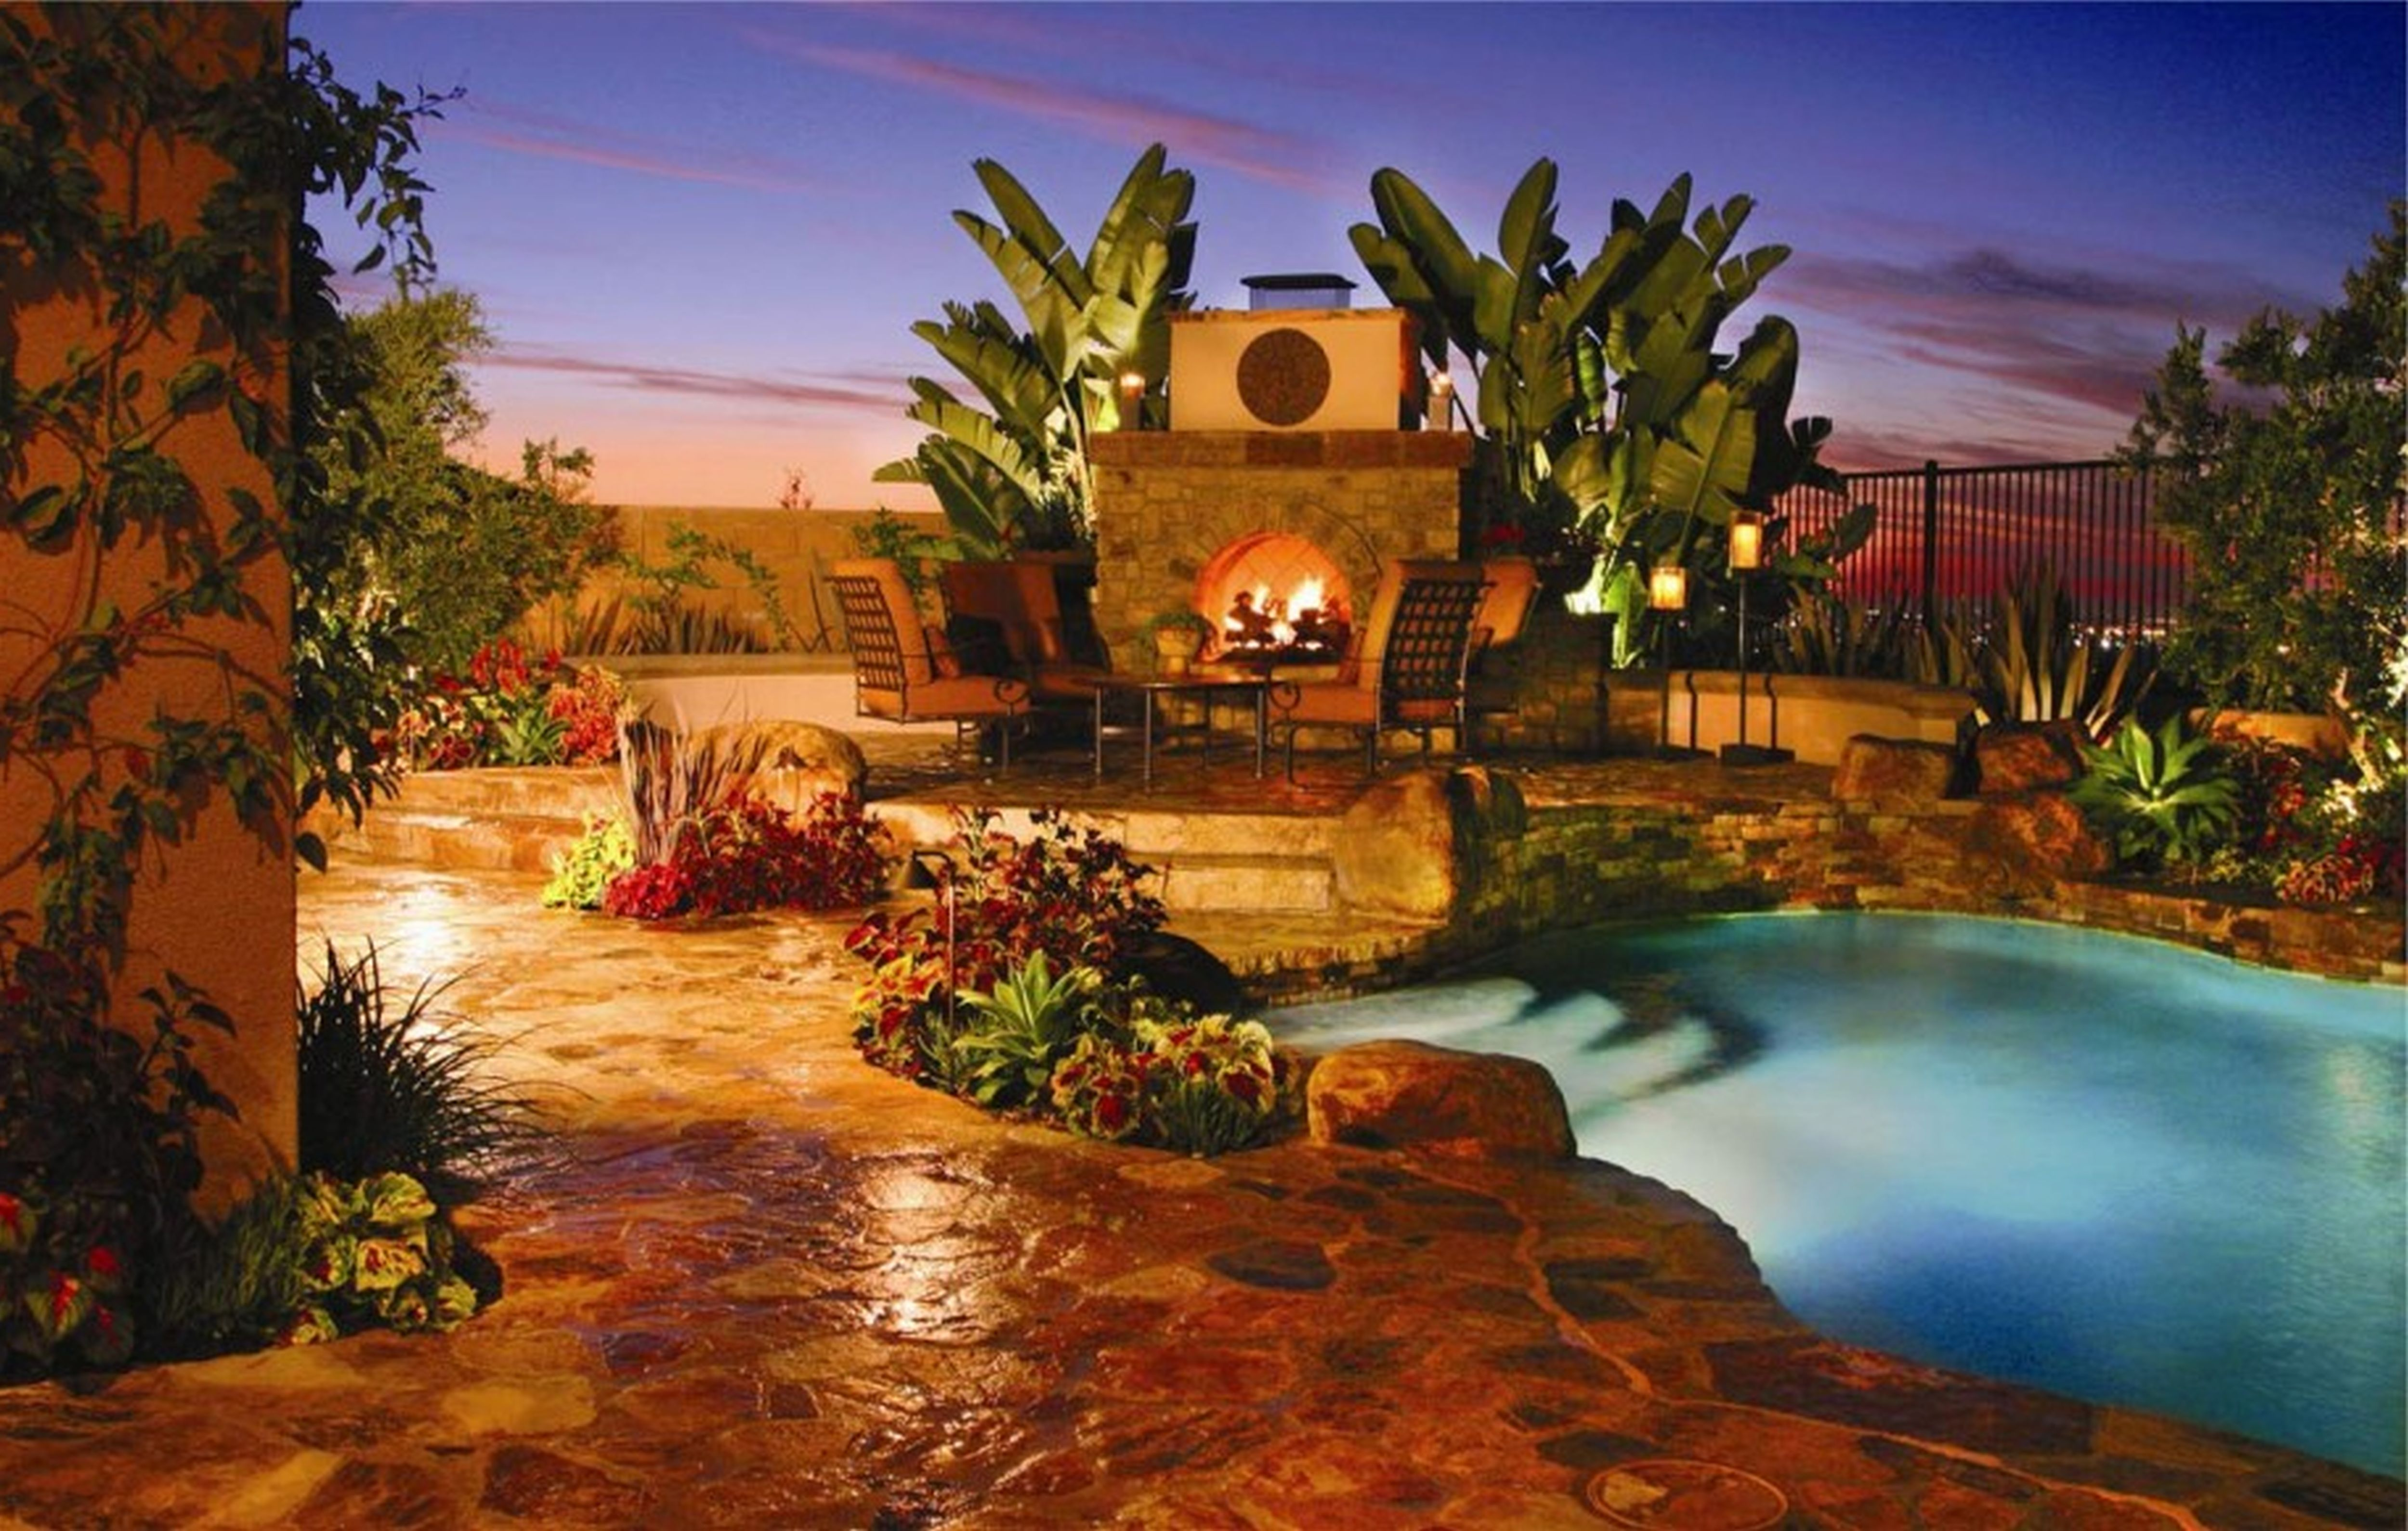 Pool-garden-fire-fireplace-quinju.com-ultimate-swimming ... on Fireplace In The Backyard id=23863